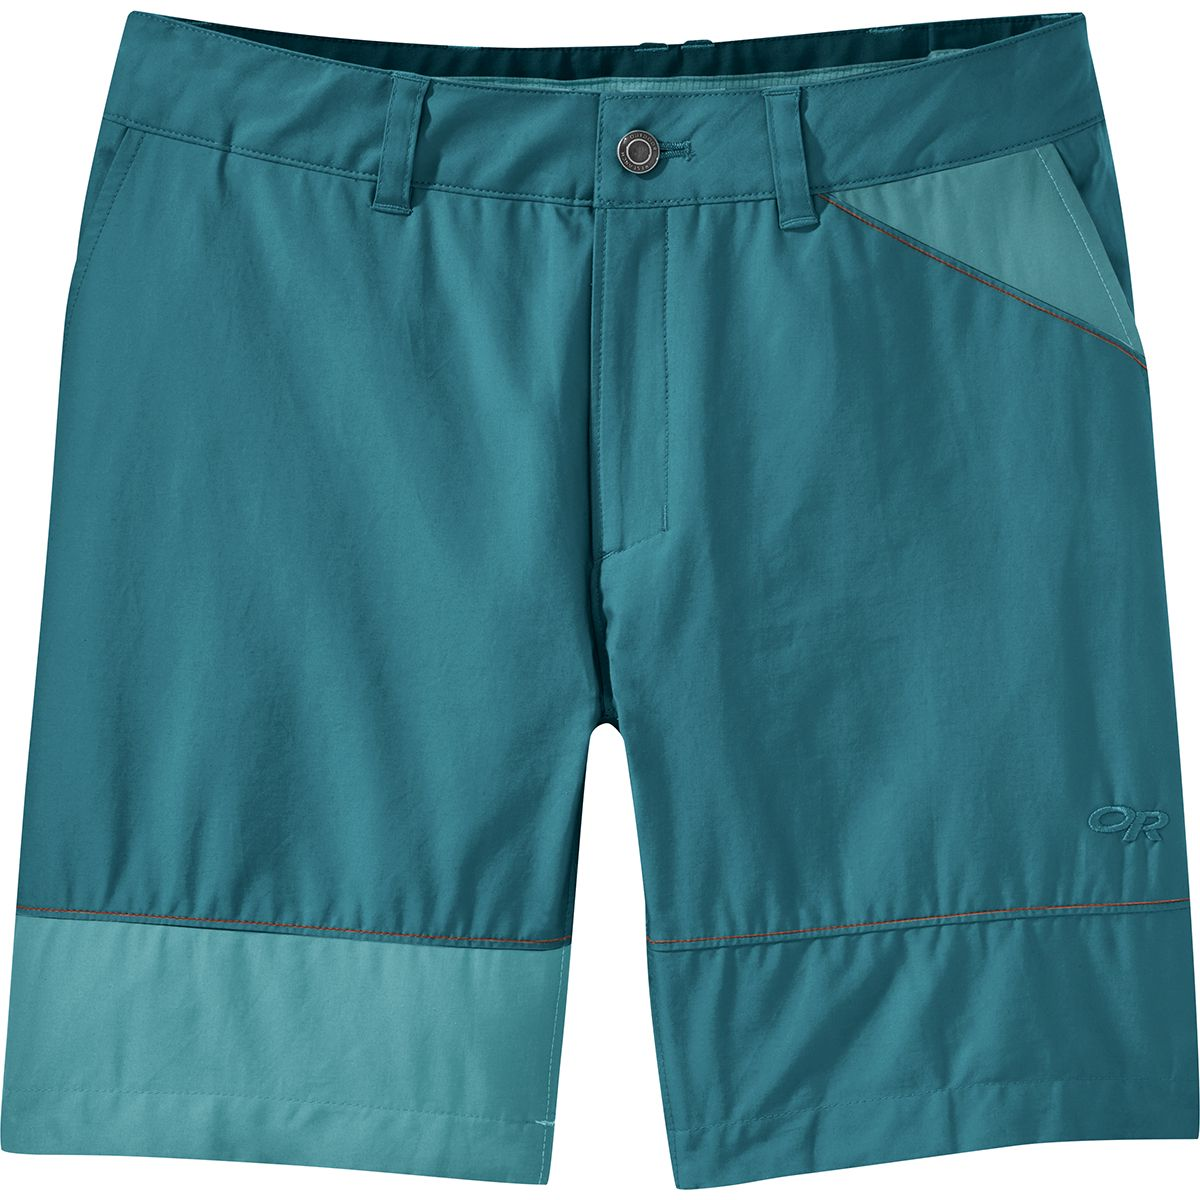 Outdoor Research Damen Quarry Shorts (Größe S, Blau)